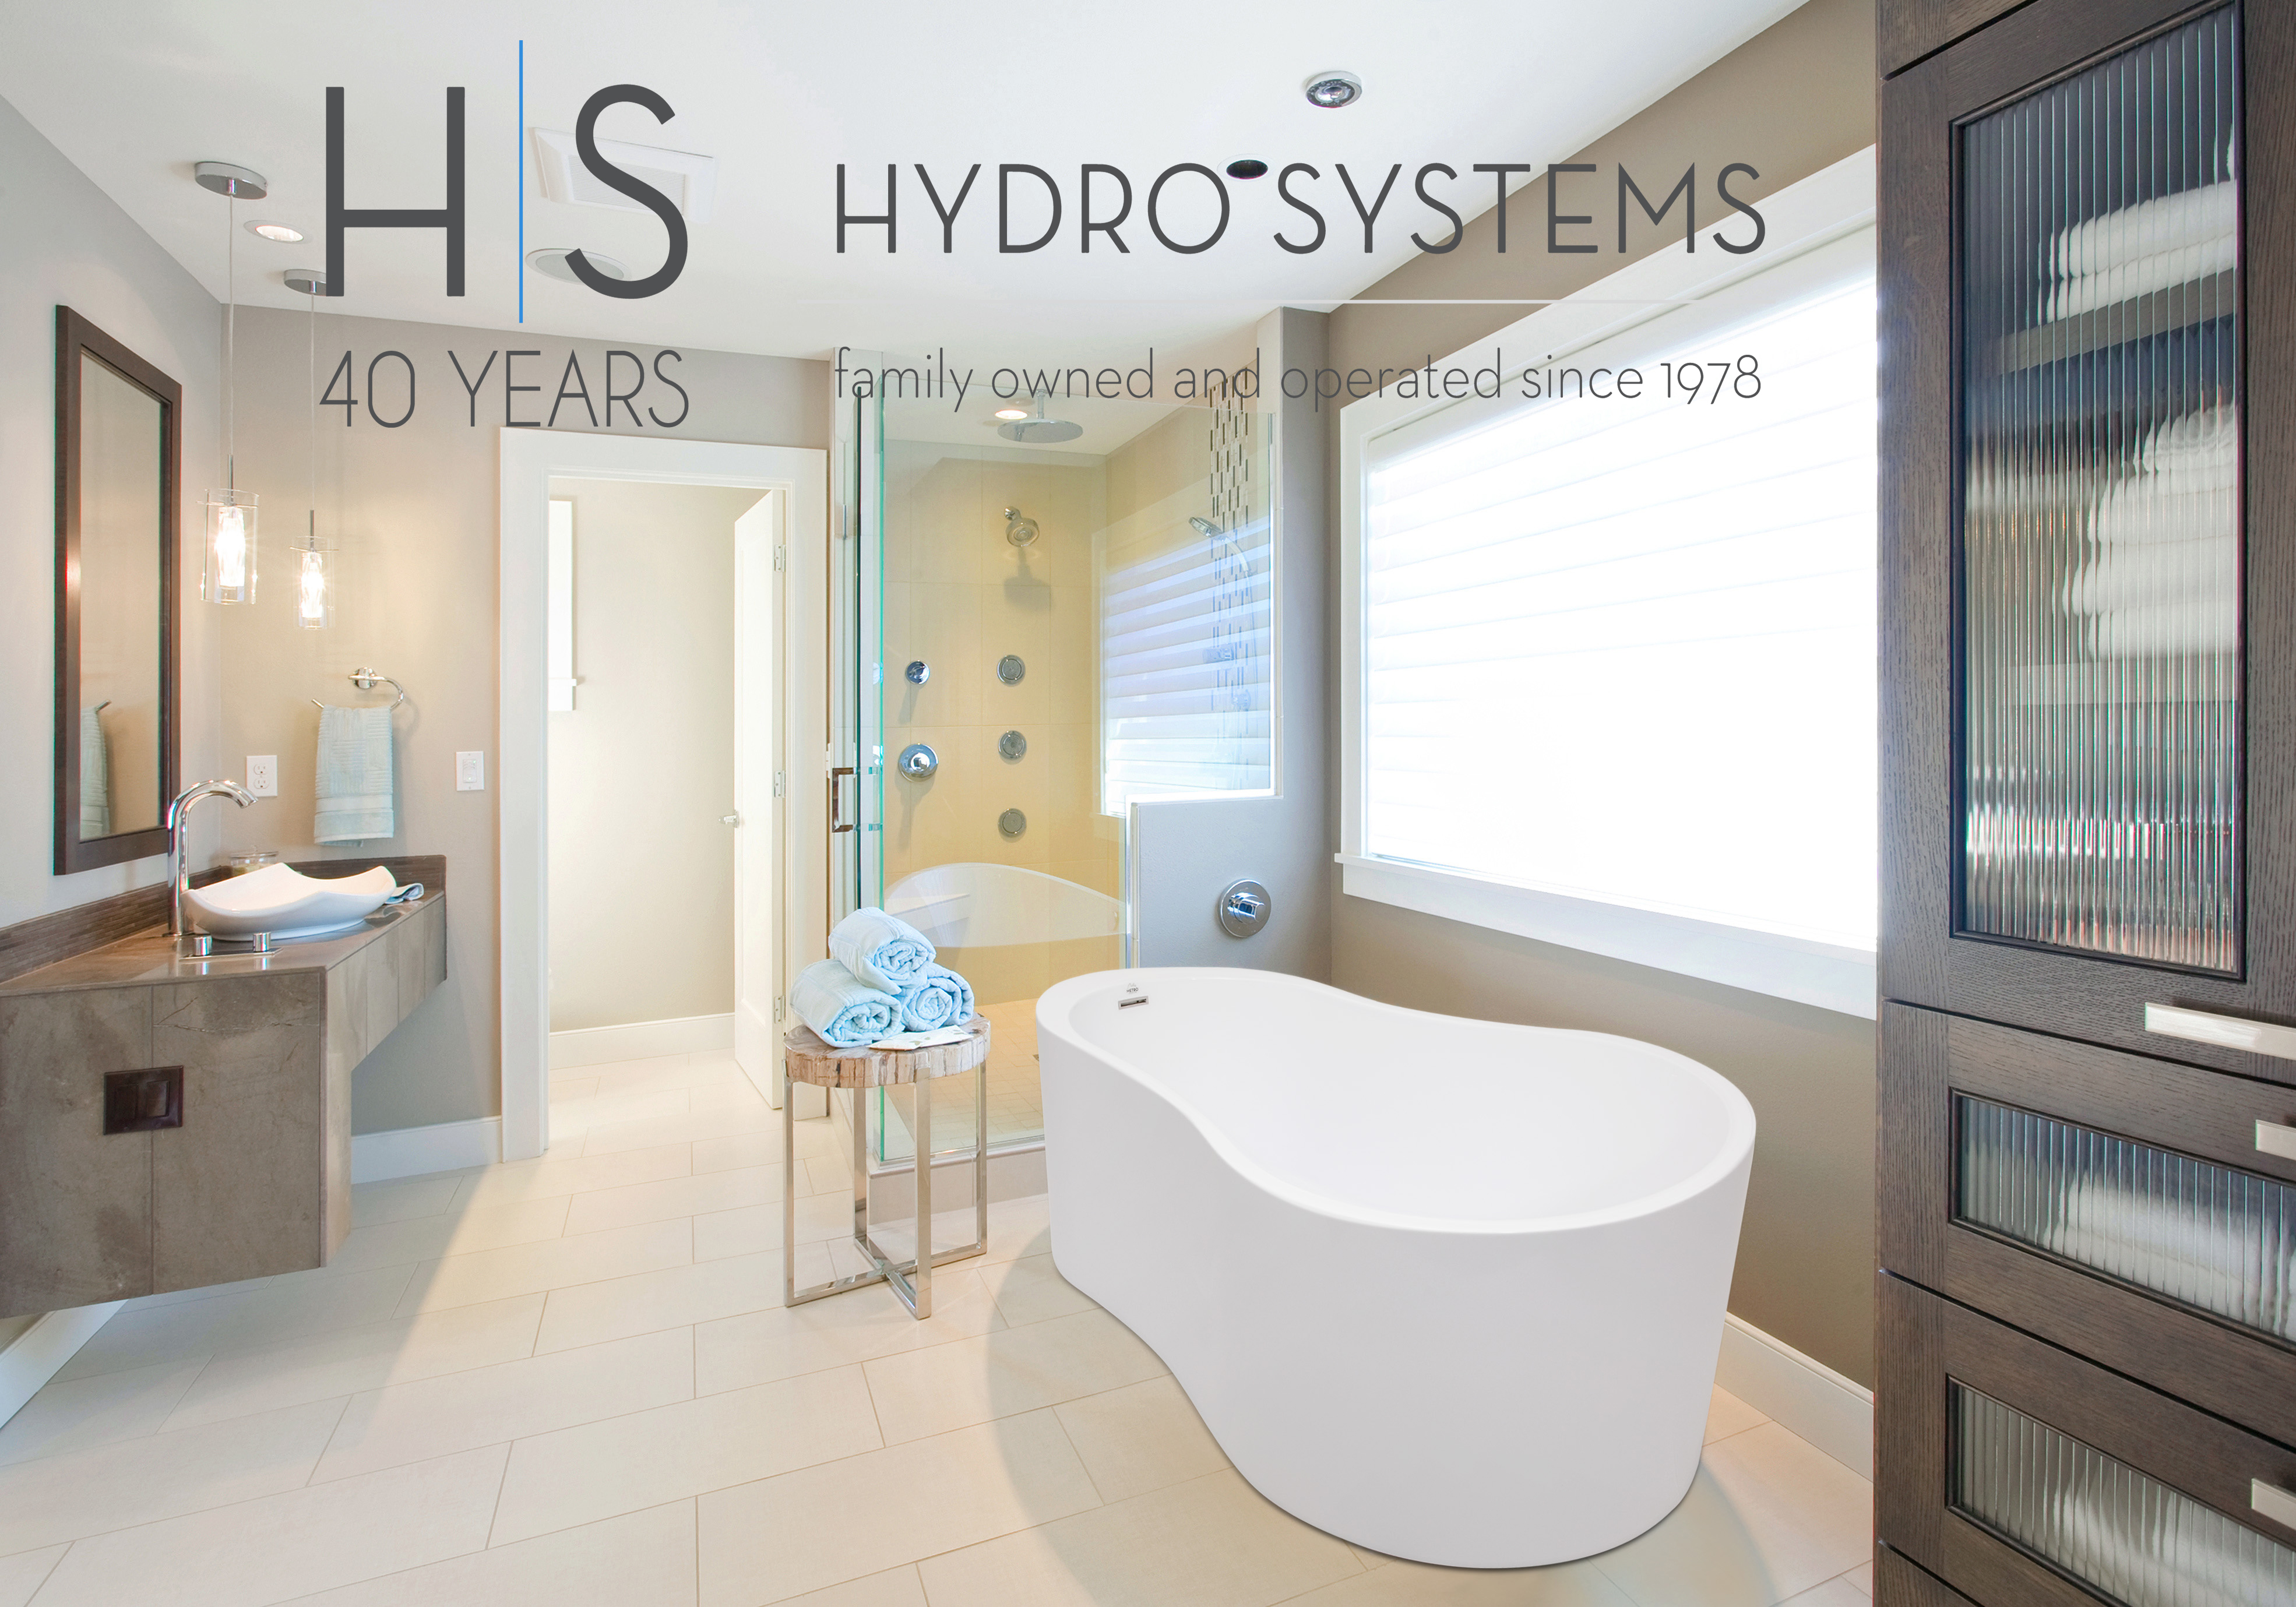 Hydro Systems to Open New Manufacturing Facility in Georgia | Newswire